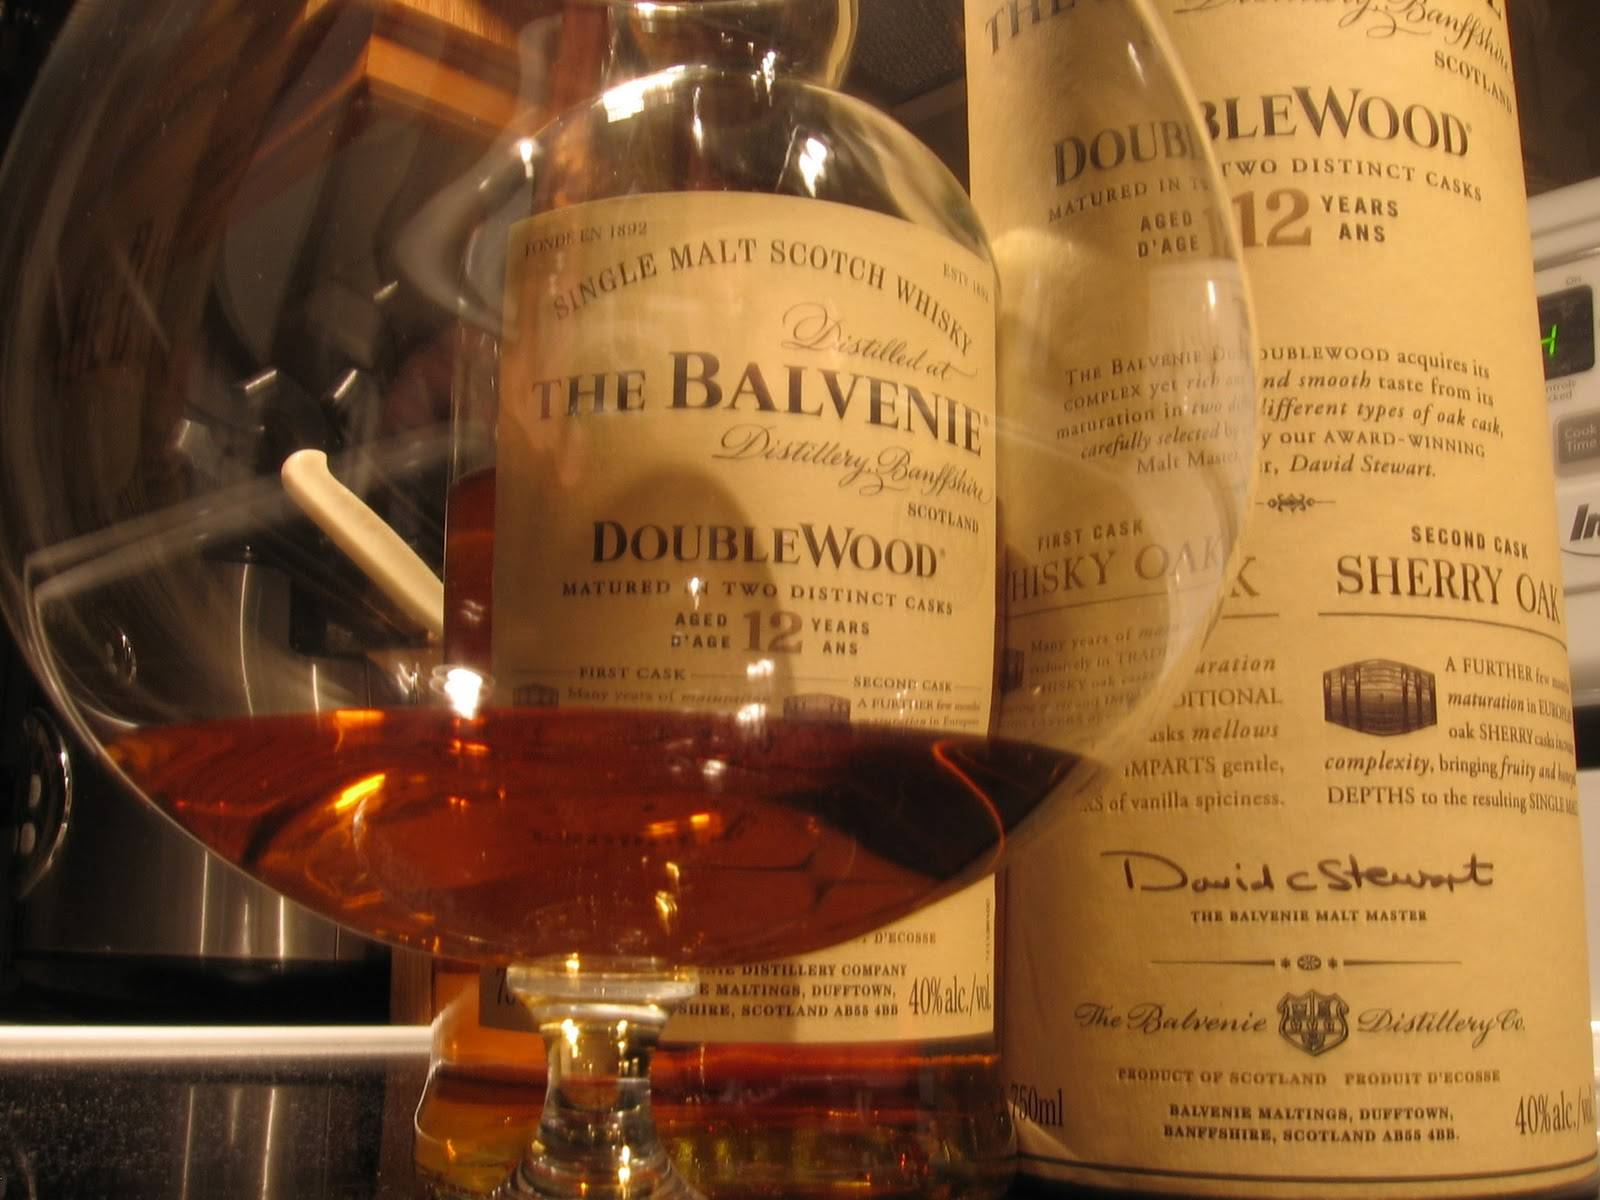 Balvenie+Doublewood+Single+Malt+Scotch+006